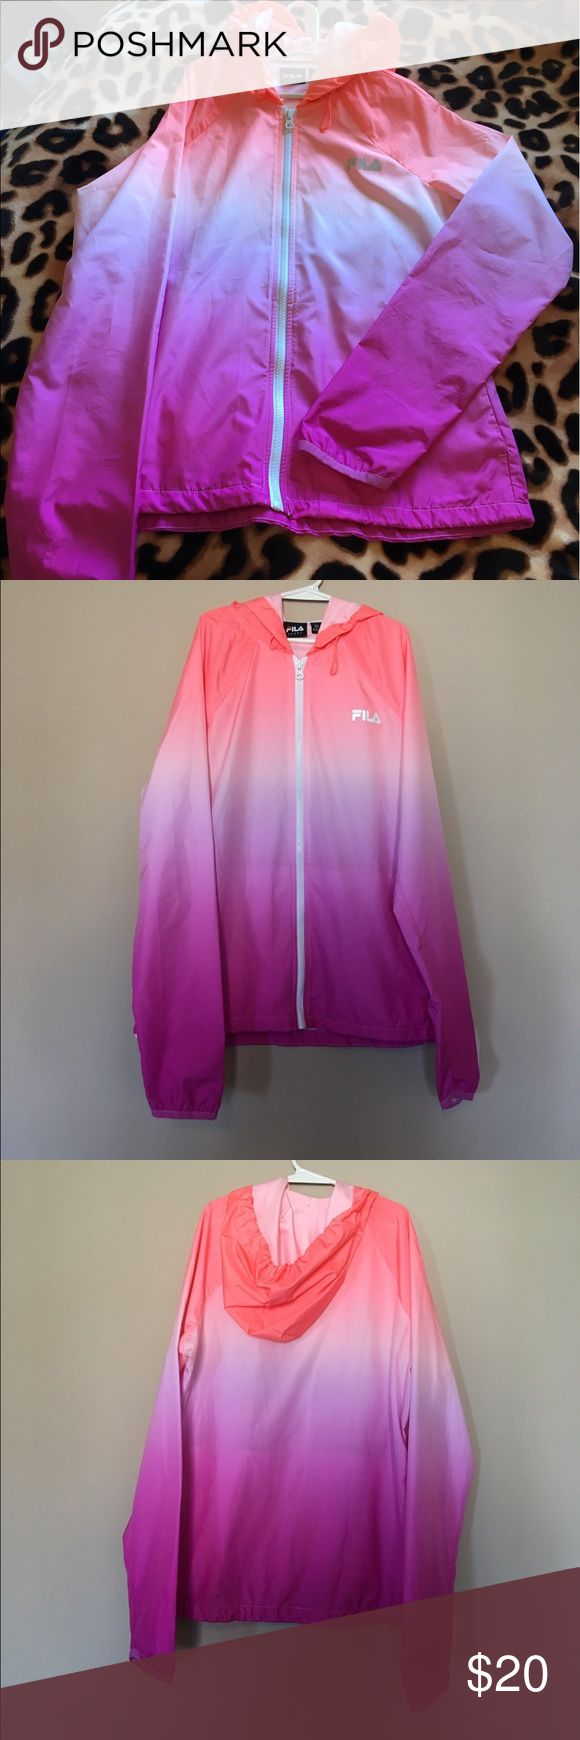 FILA Ombré Rain Jacket!😍 super cute rain jacket! very thin jacket with zipper & hood. only worn a handful of times. Bundle with me to save 20%! REASONABLE offers always considered! Fila Jackets & Coats